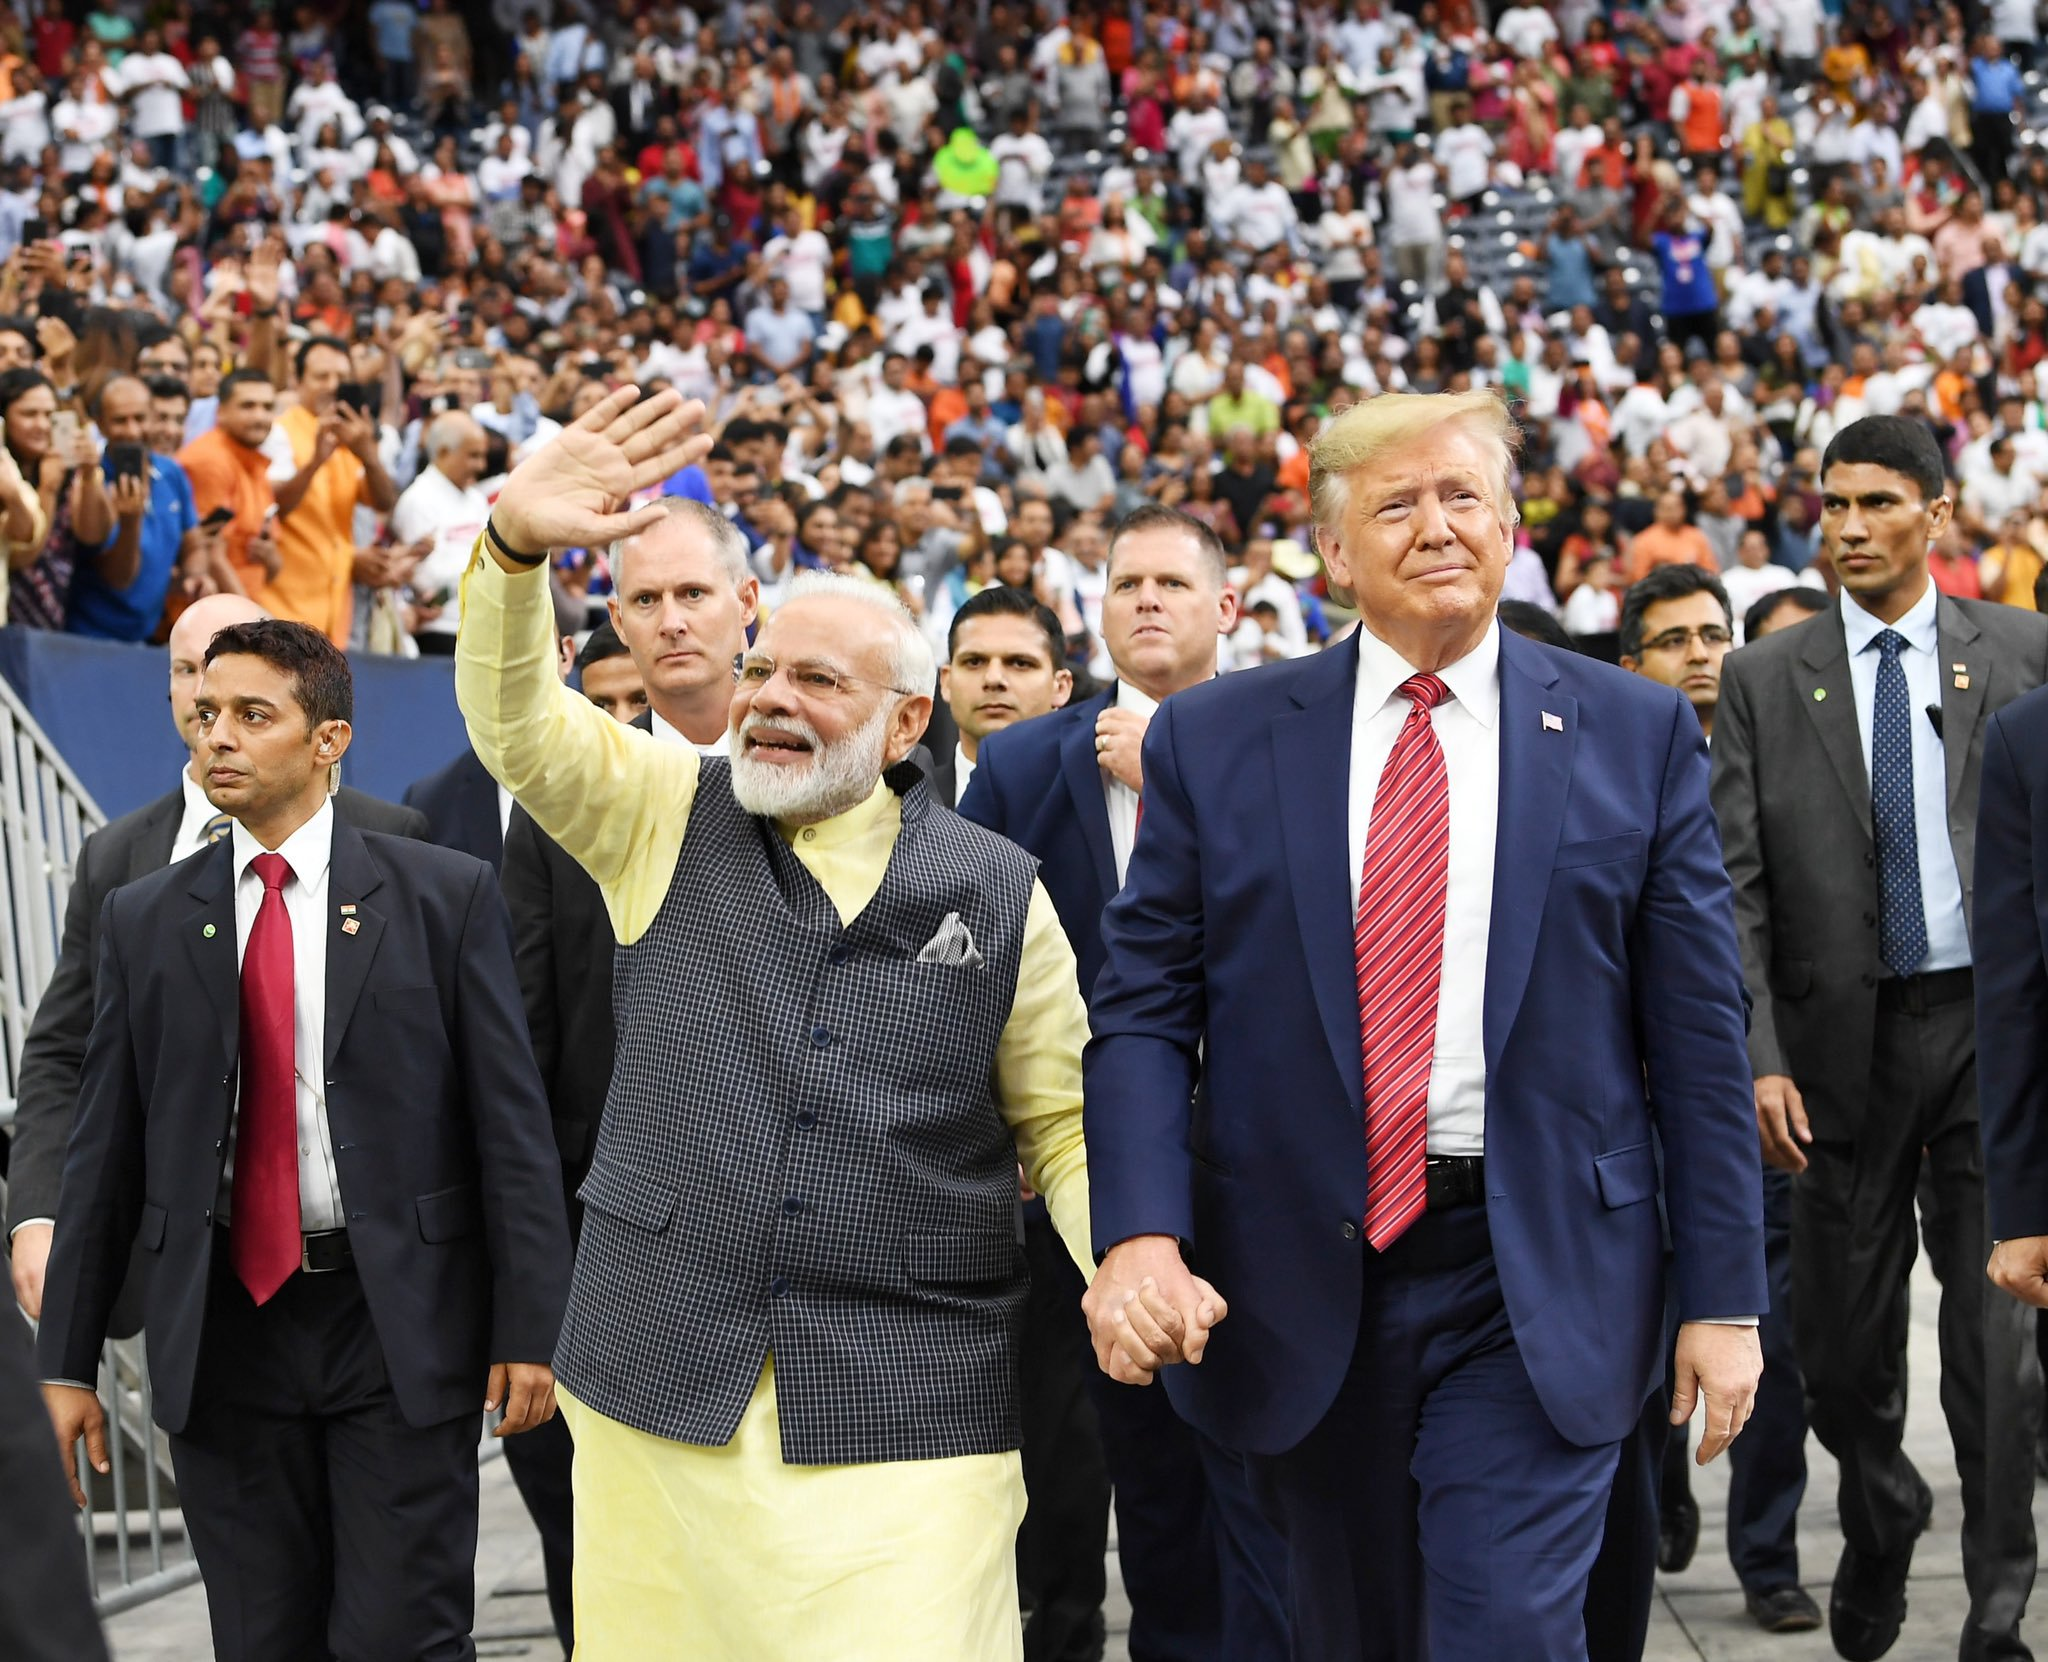 Prime Minister Modi and President Trump jointly addressed a rally in Houston last month. Photo courtesy: Twitter/@narendramodi